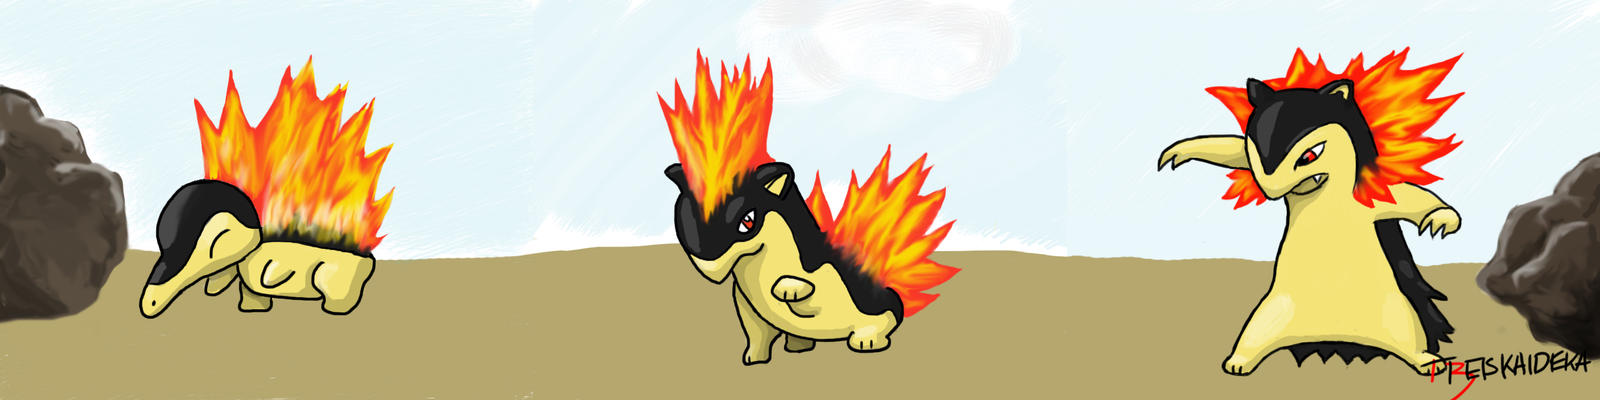 cyndaquil typhlosion quilava - photo #13